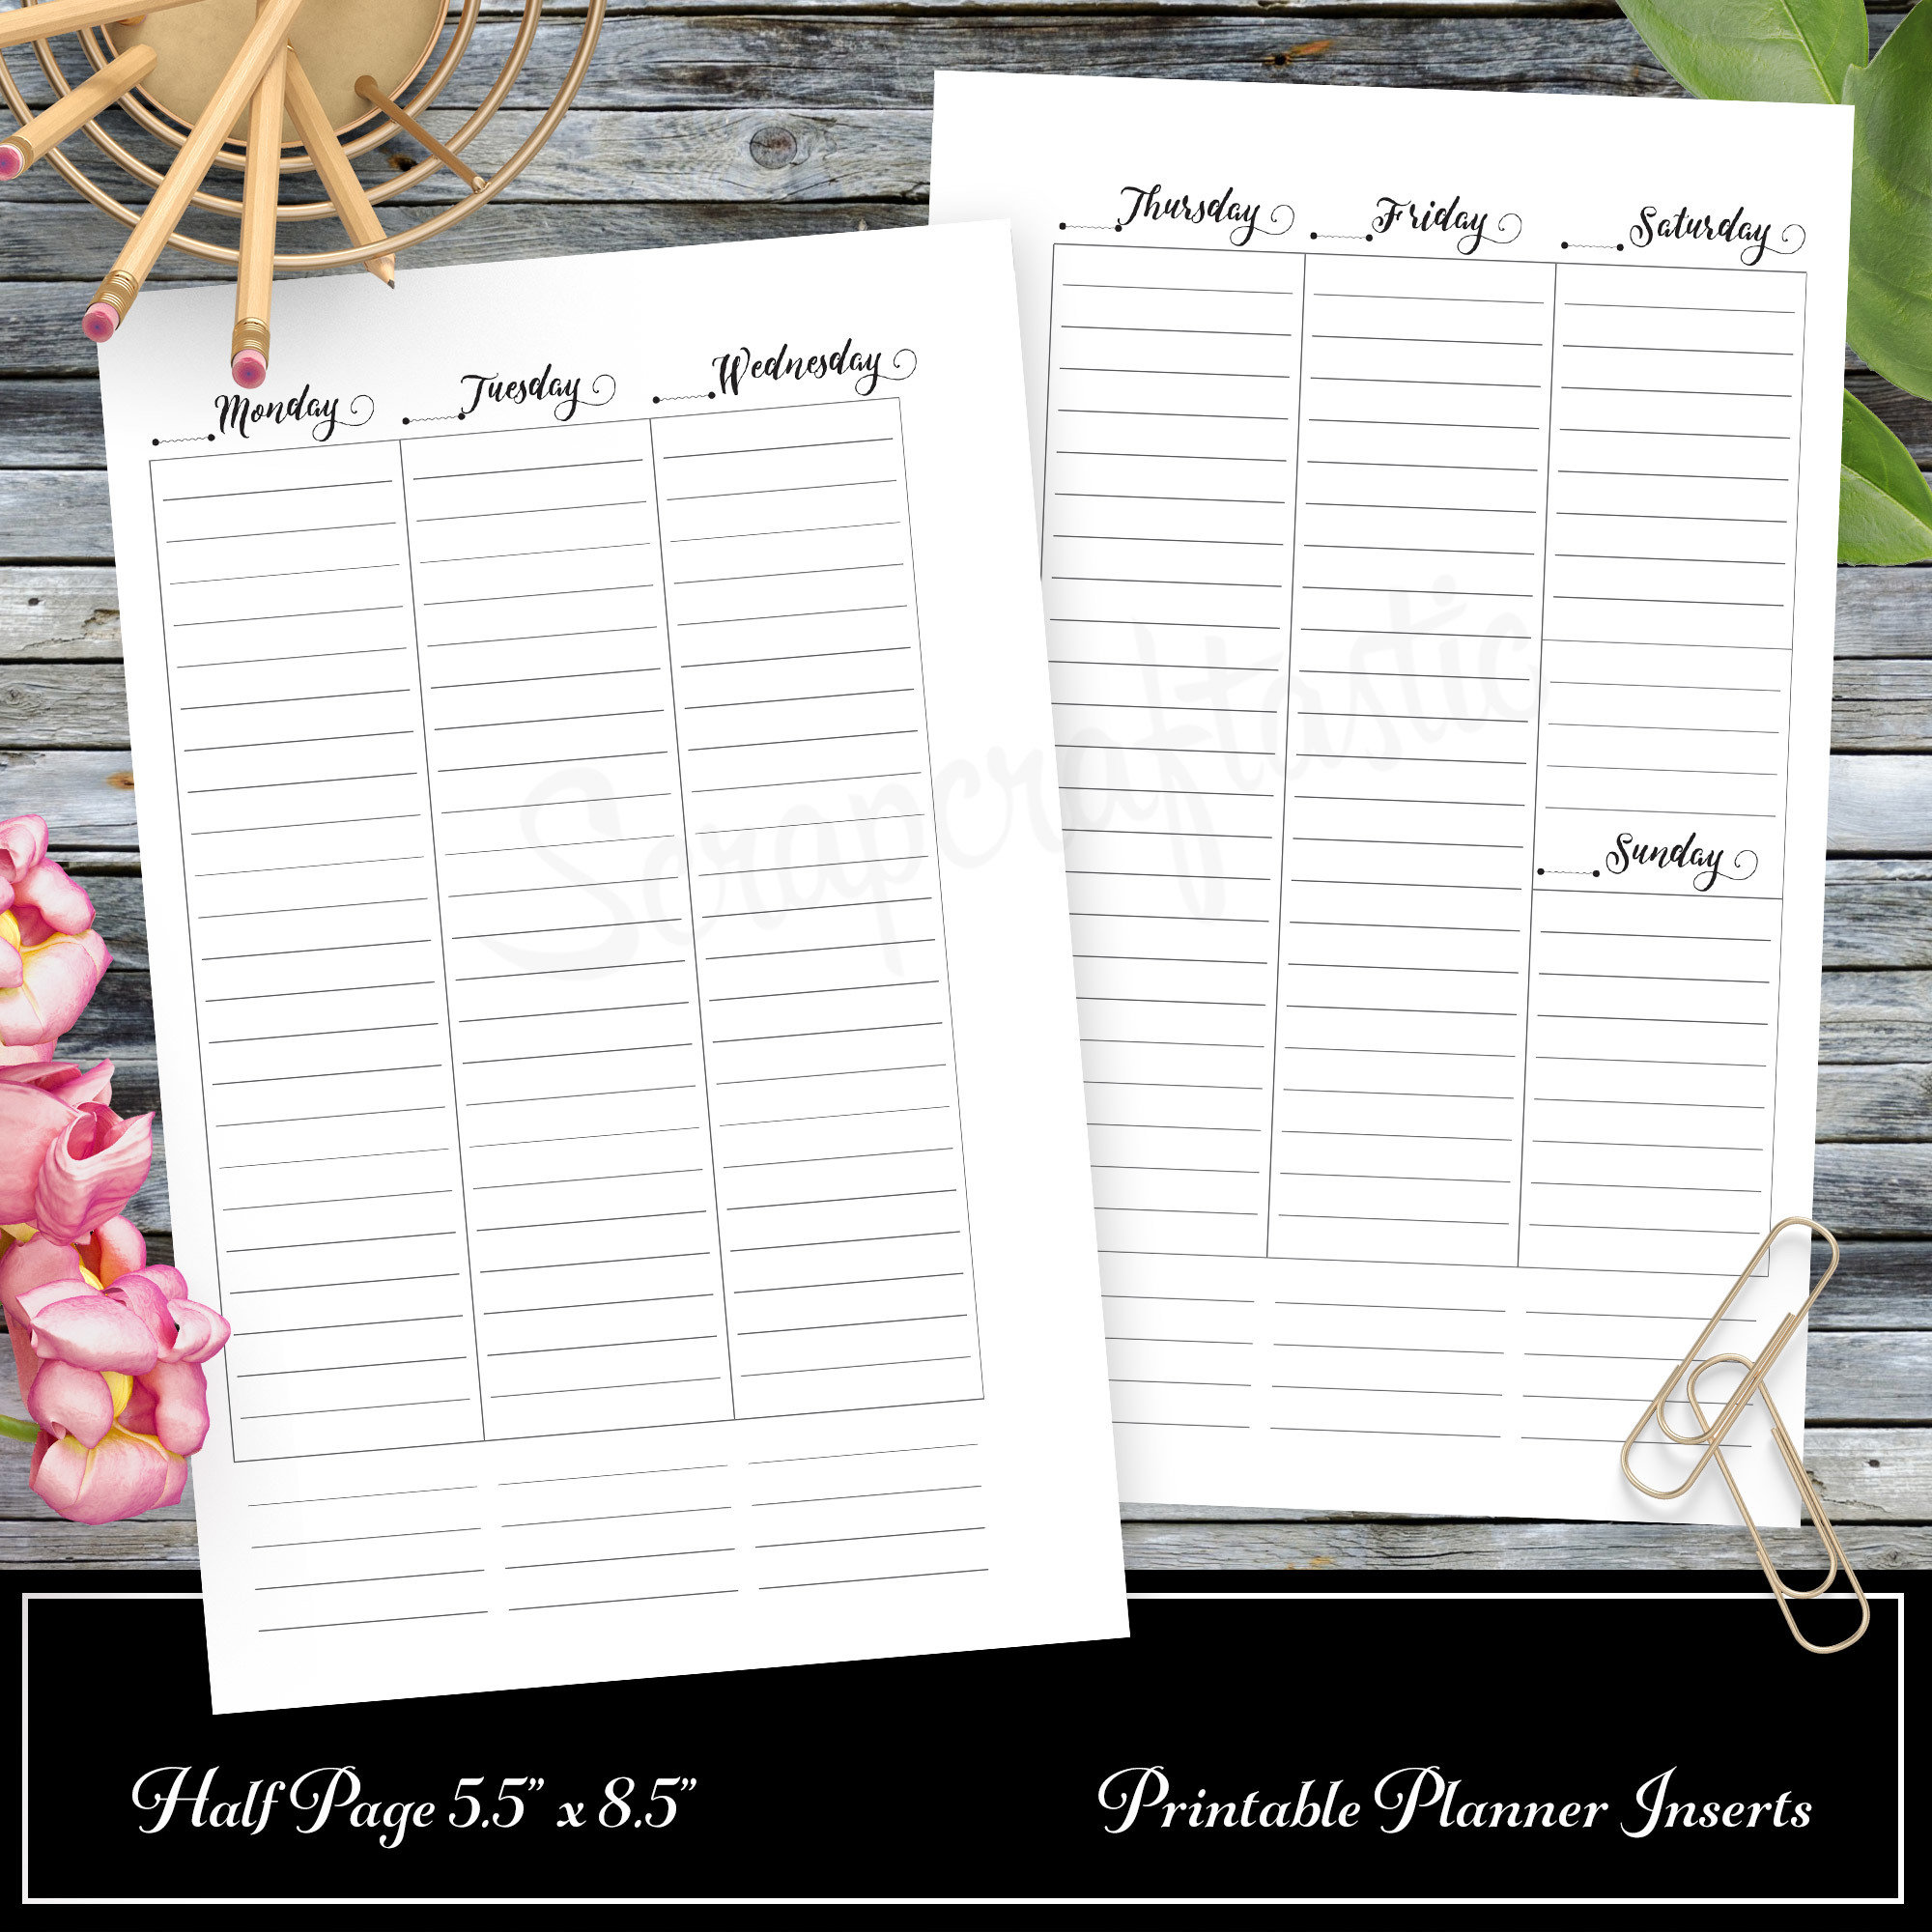 WO2P Column Lined Half Page Printable Planner Insert Refill Undated fits A5 Binder - Recollections, Filofax, Kikki K, Erin Condren width columns 00315